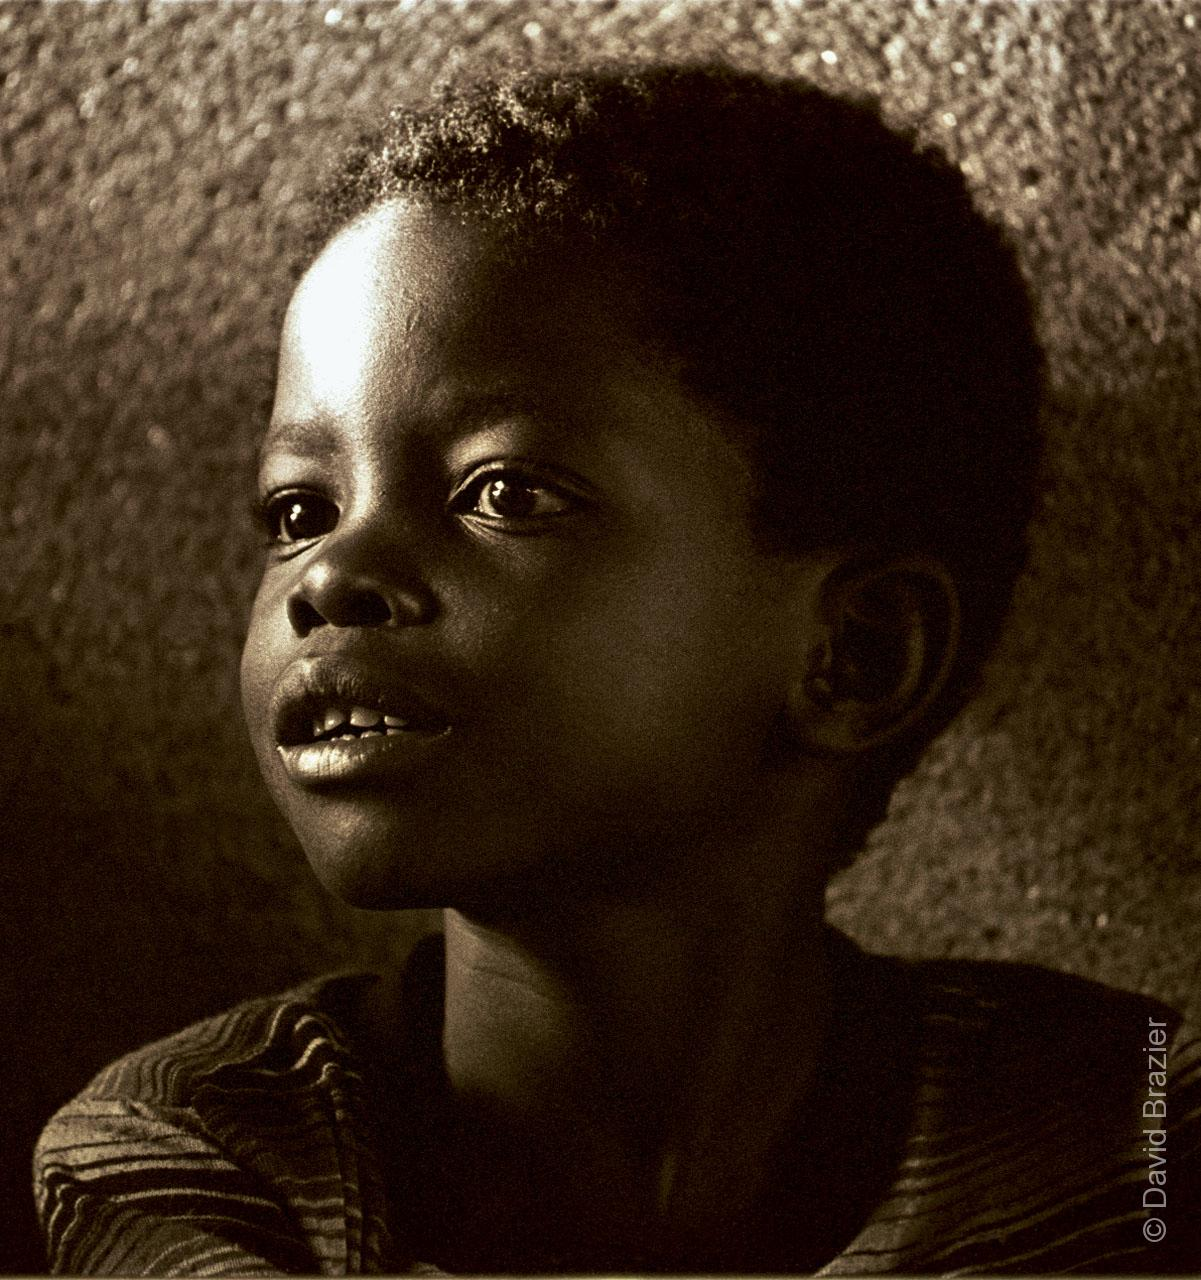 Sepia image of African child in a street